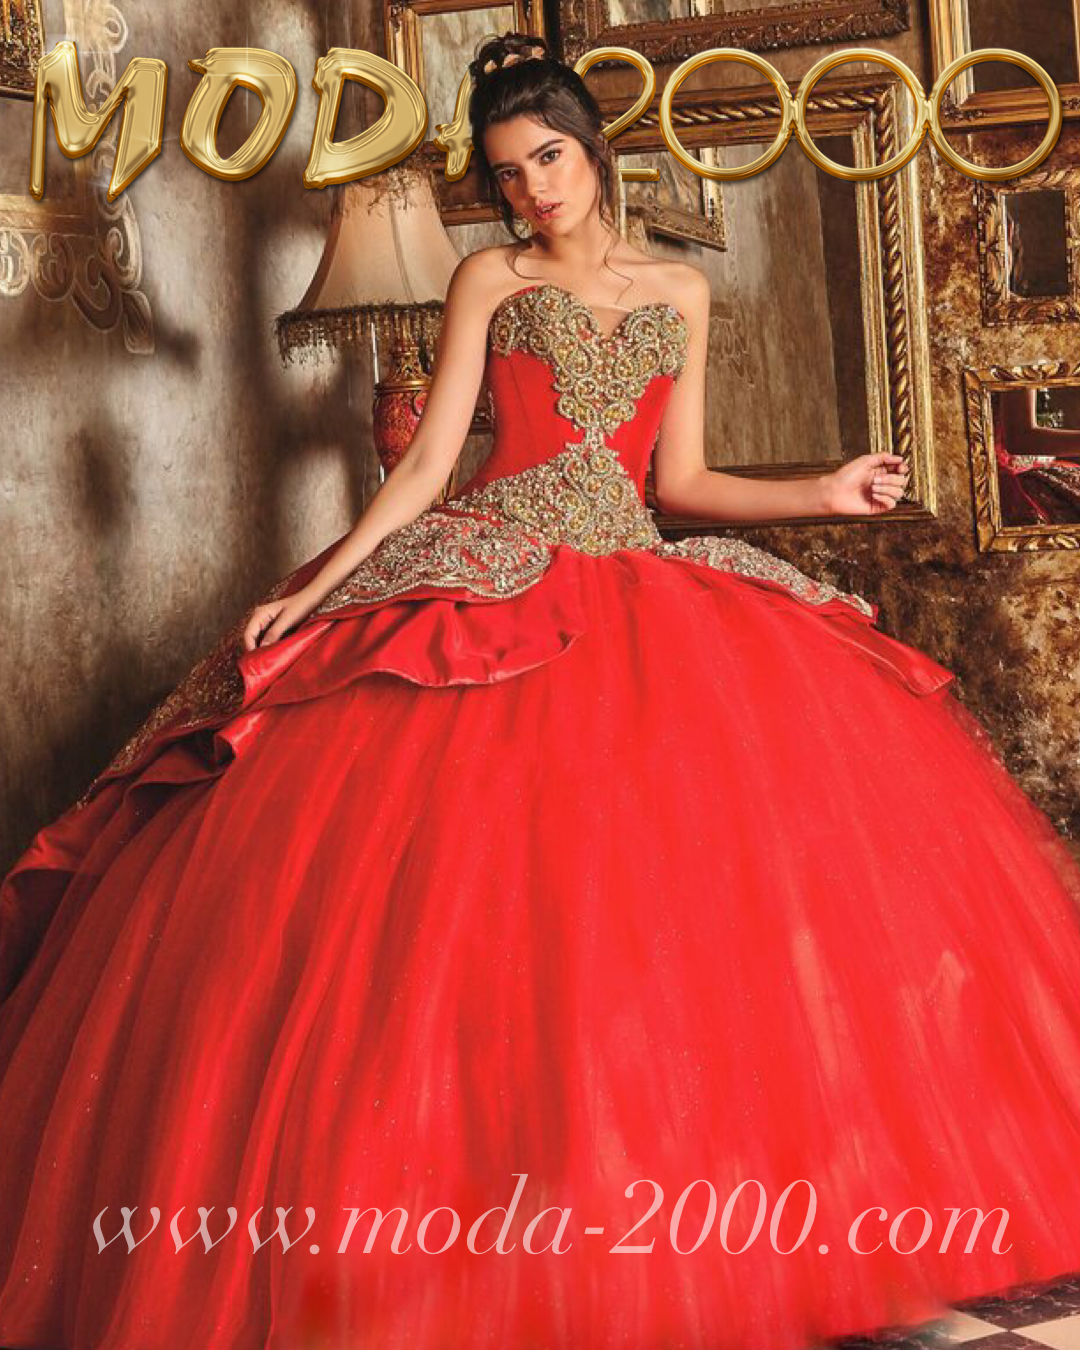 d825d272943 Sweetheart jeweled red gold charro quinceanera dress available at Moda 2000✨  Instagram   moda2000inc